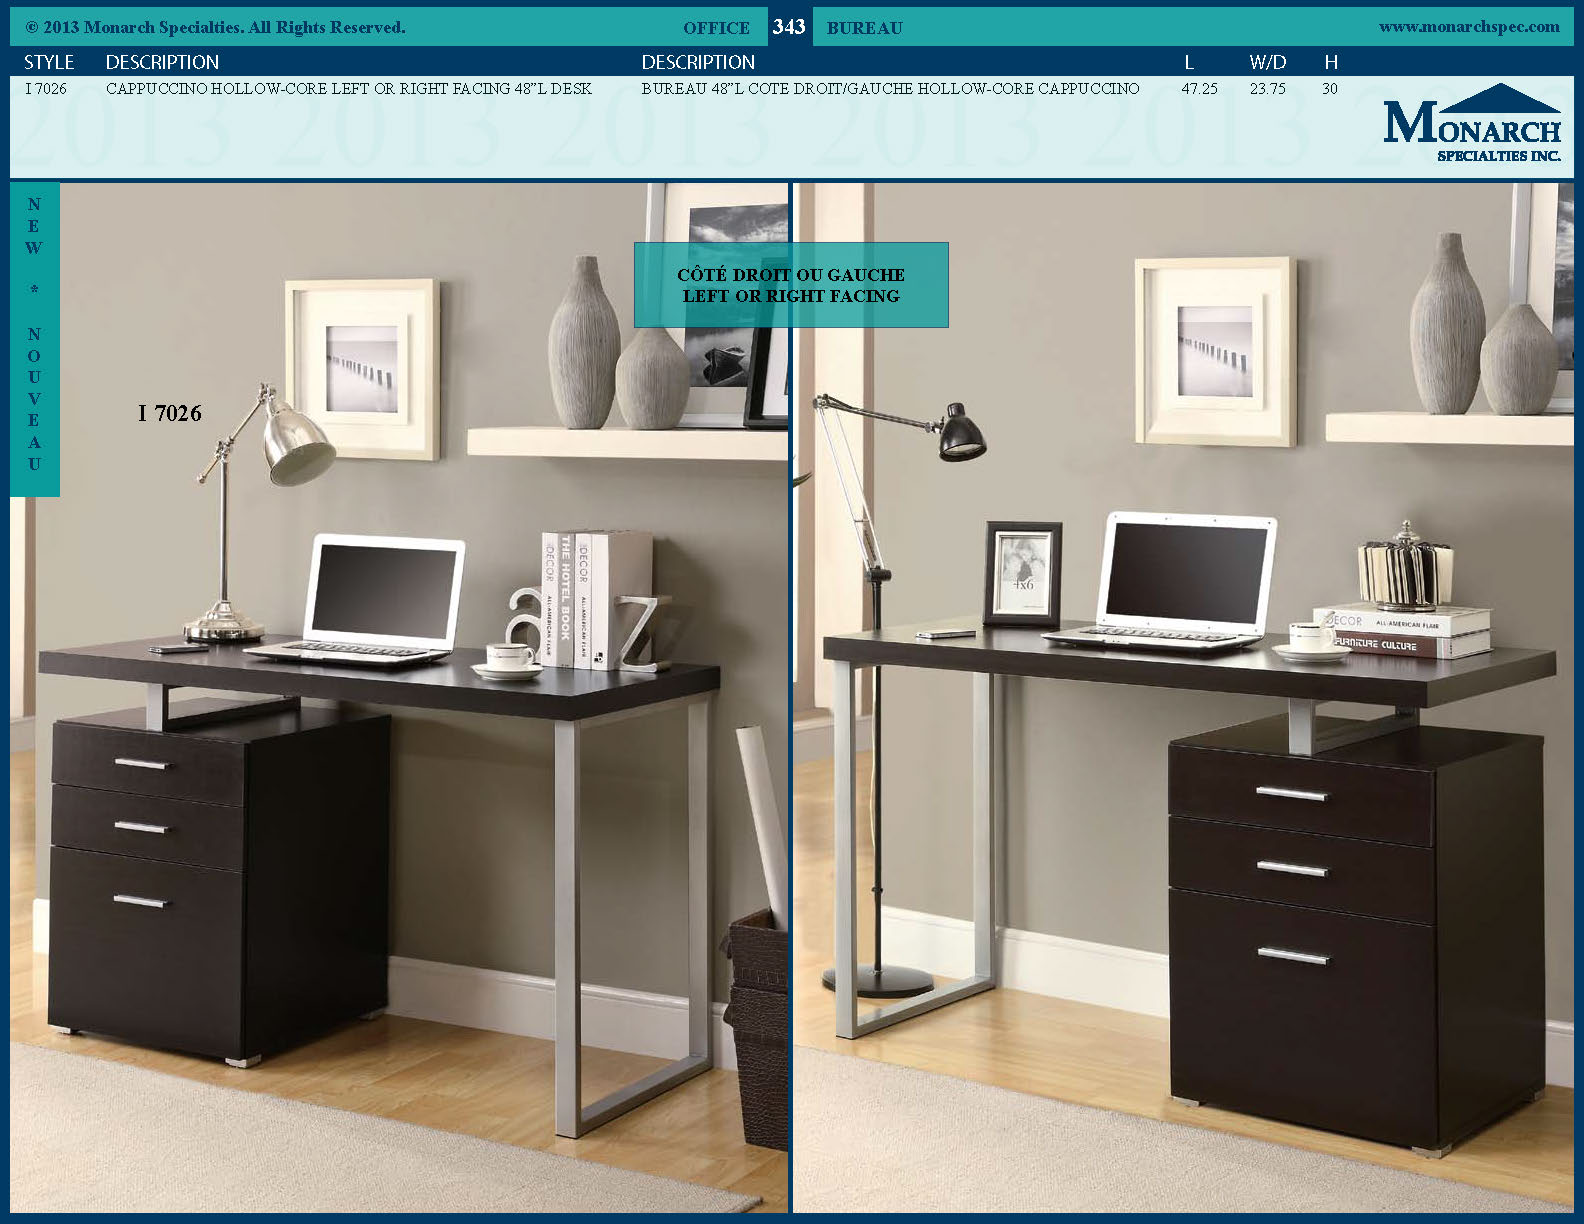 "I 7026 - CAPPUCCINO HOLLOW-CORE RIGHT OR LEFT FACING 48"" DESK"